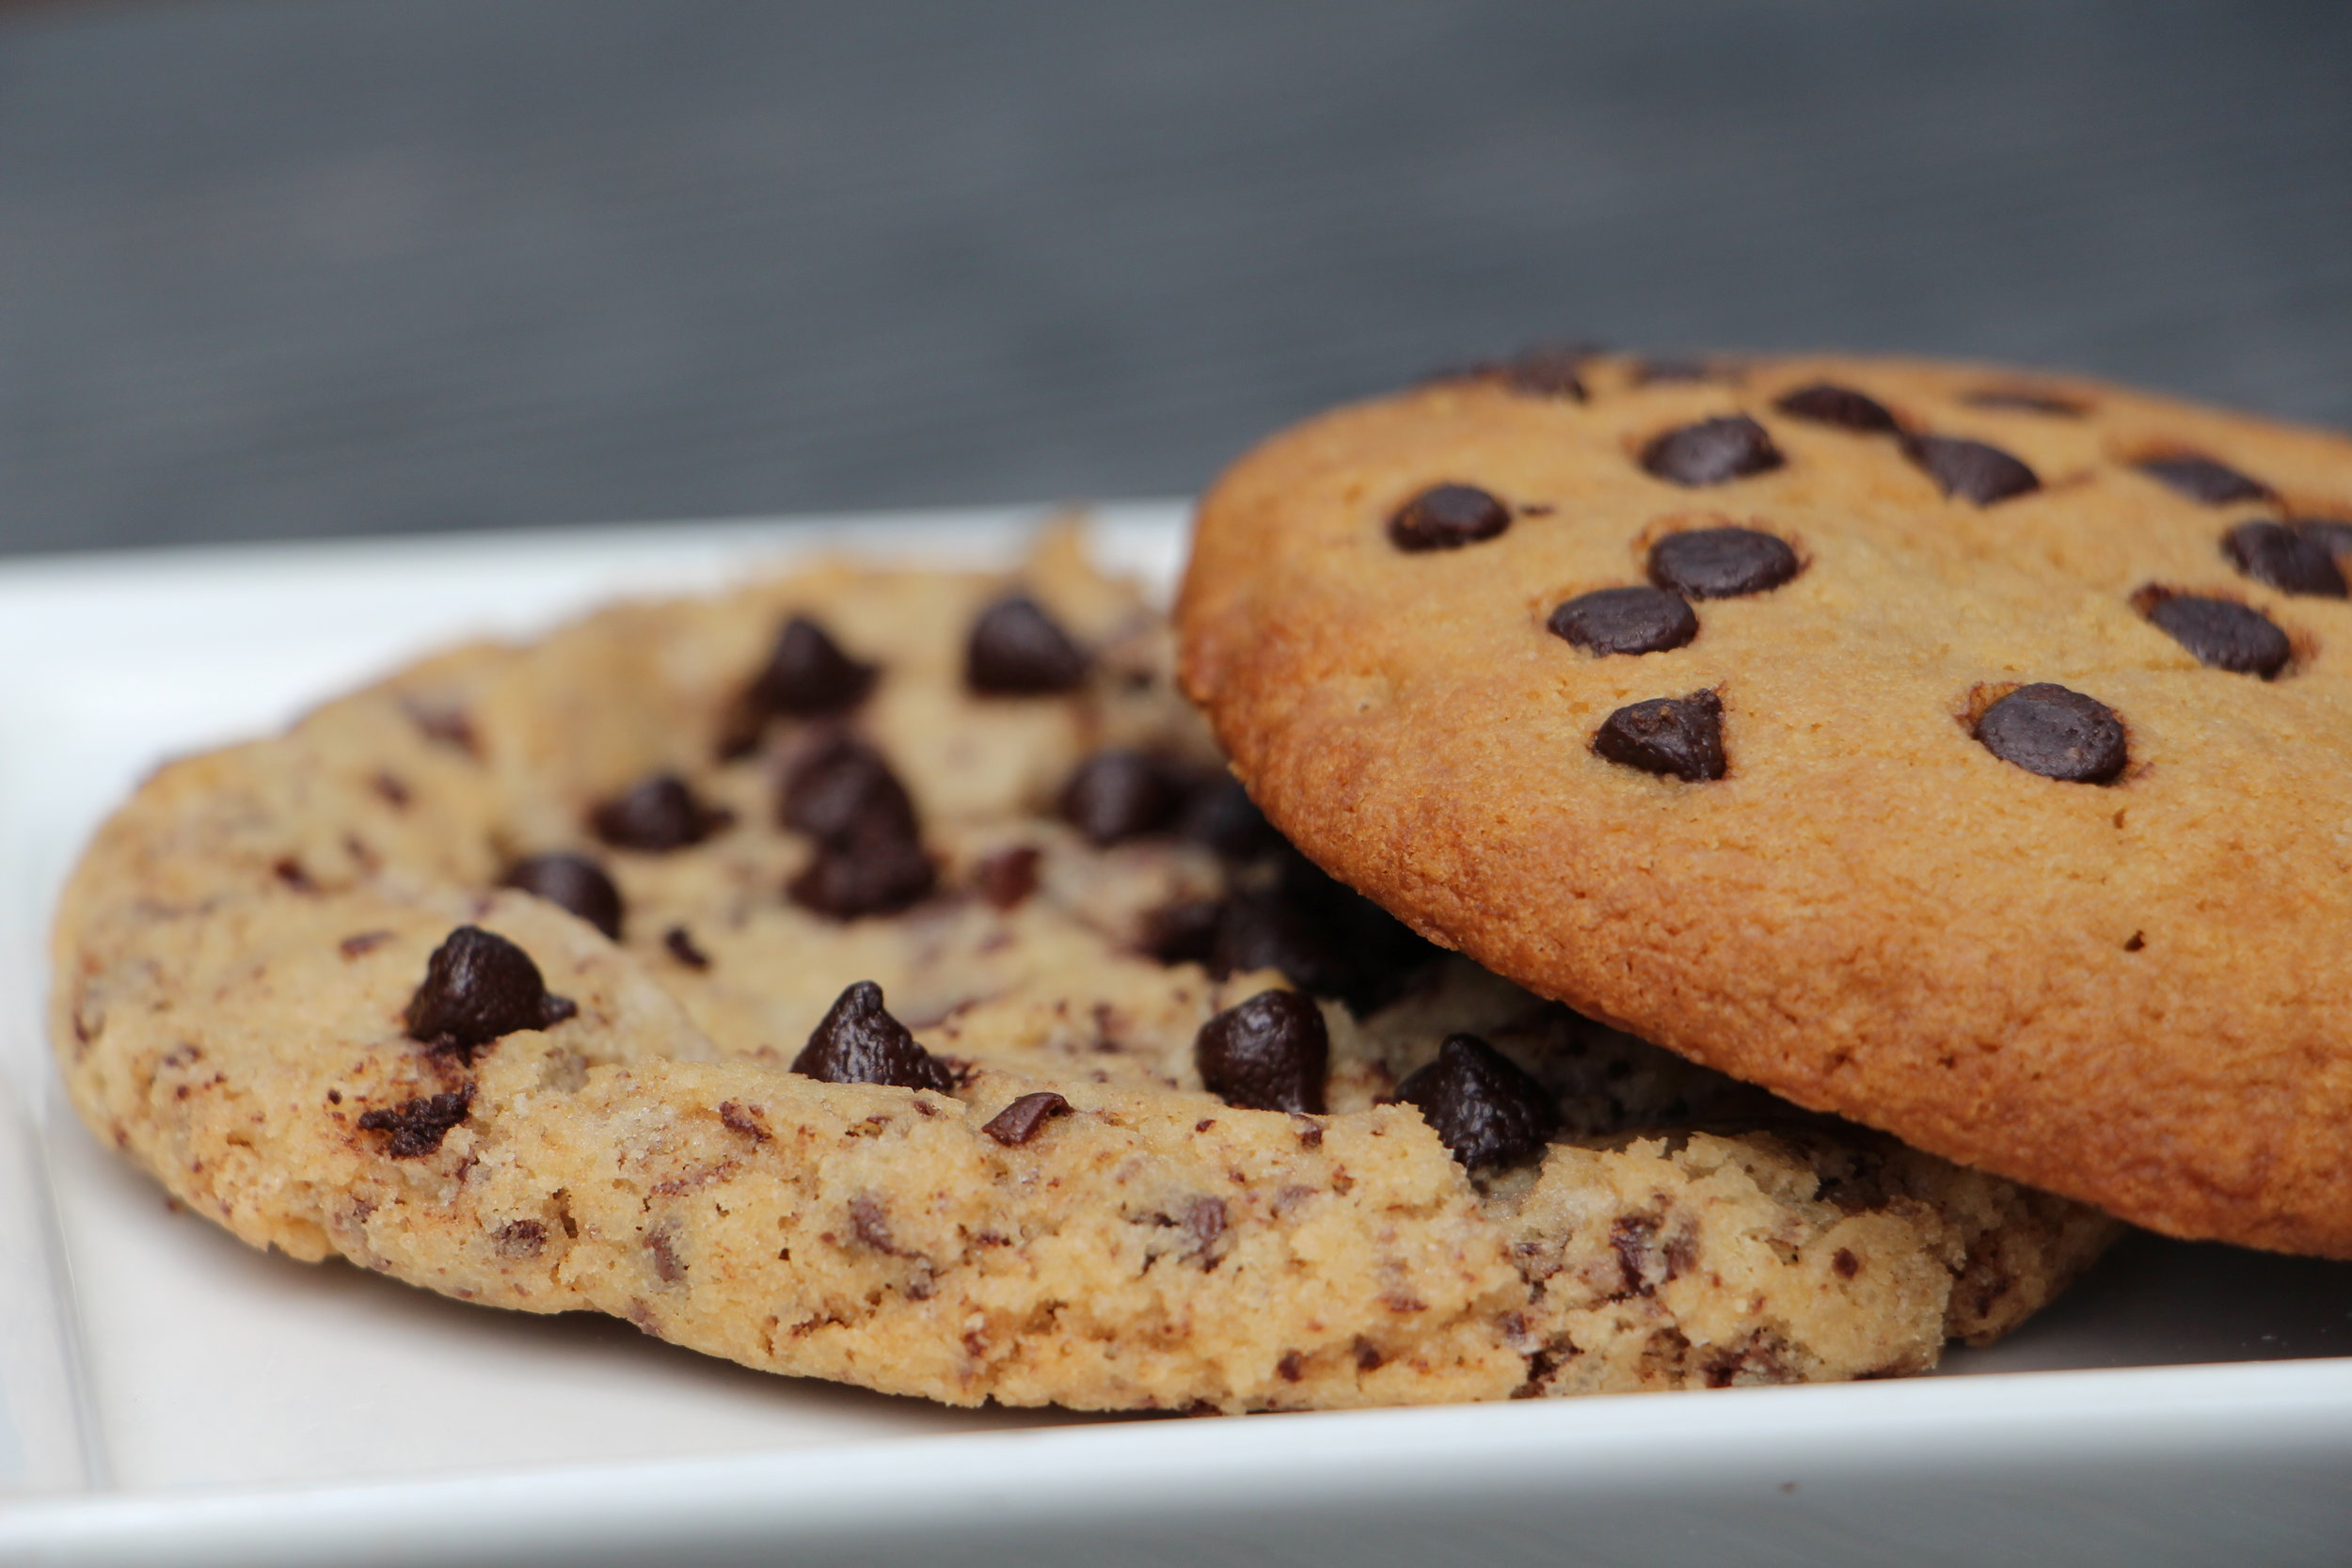 Sometimes, you just need something small to satisfy those pesky dessert cravings, and our Chocolate Chip Cookie, crunchy at the edges and soft and fudgy in the centre speckled with chocolate chips will hit the spot.